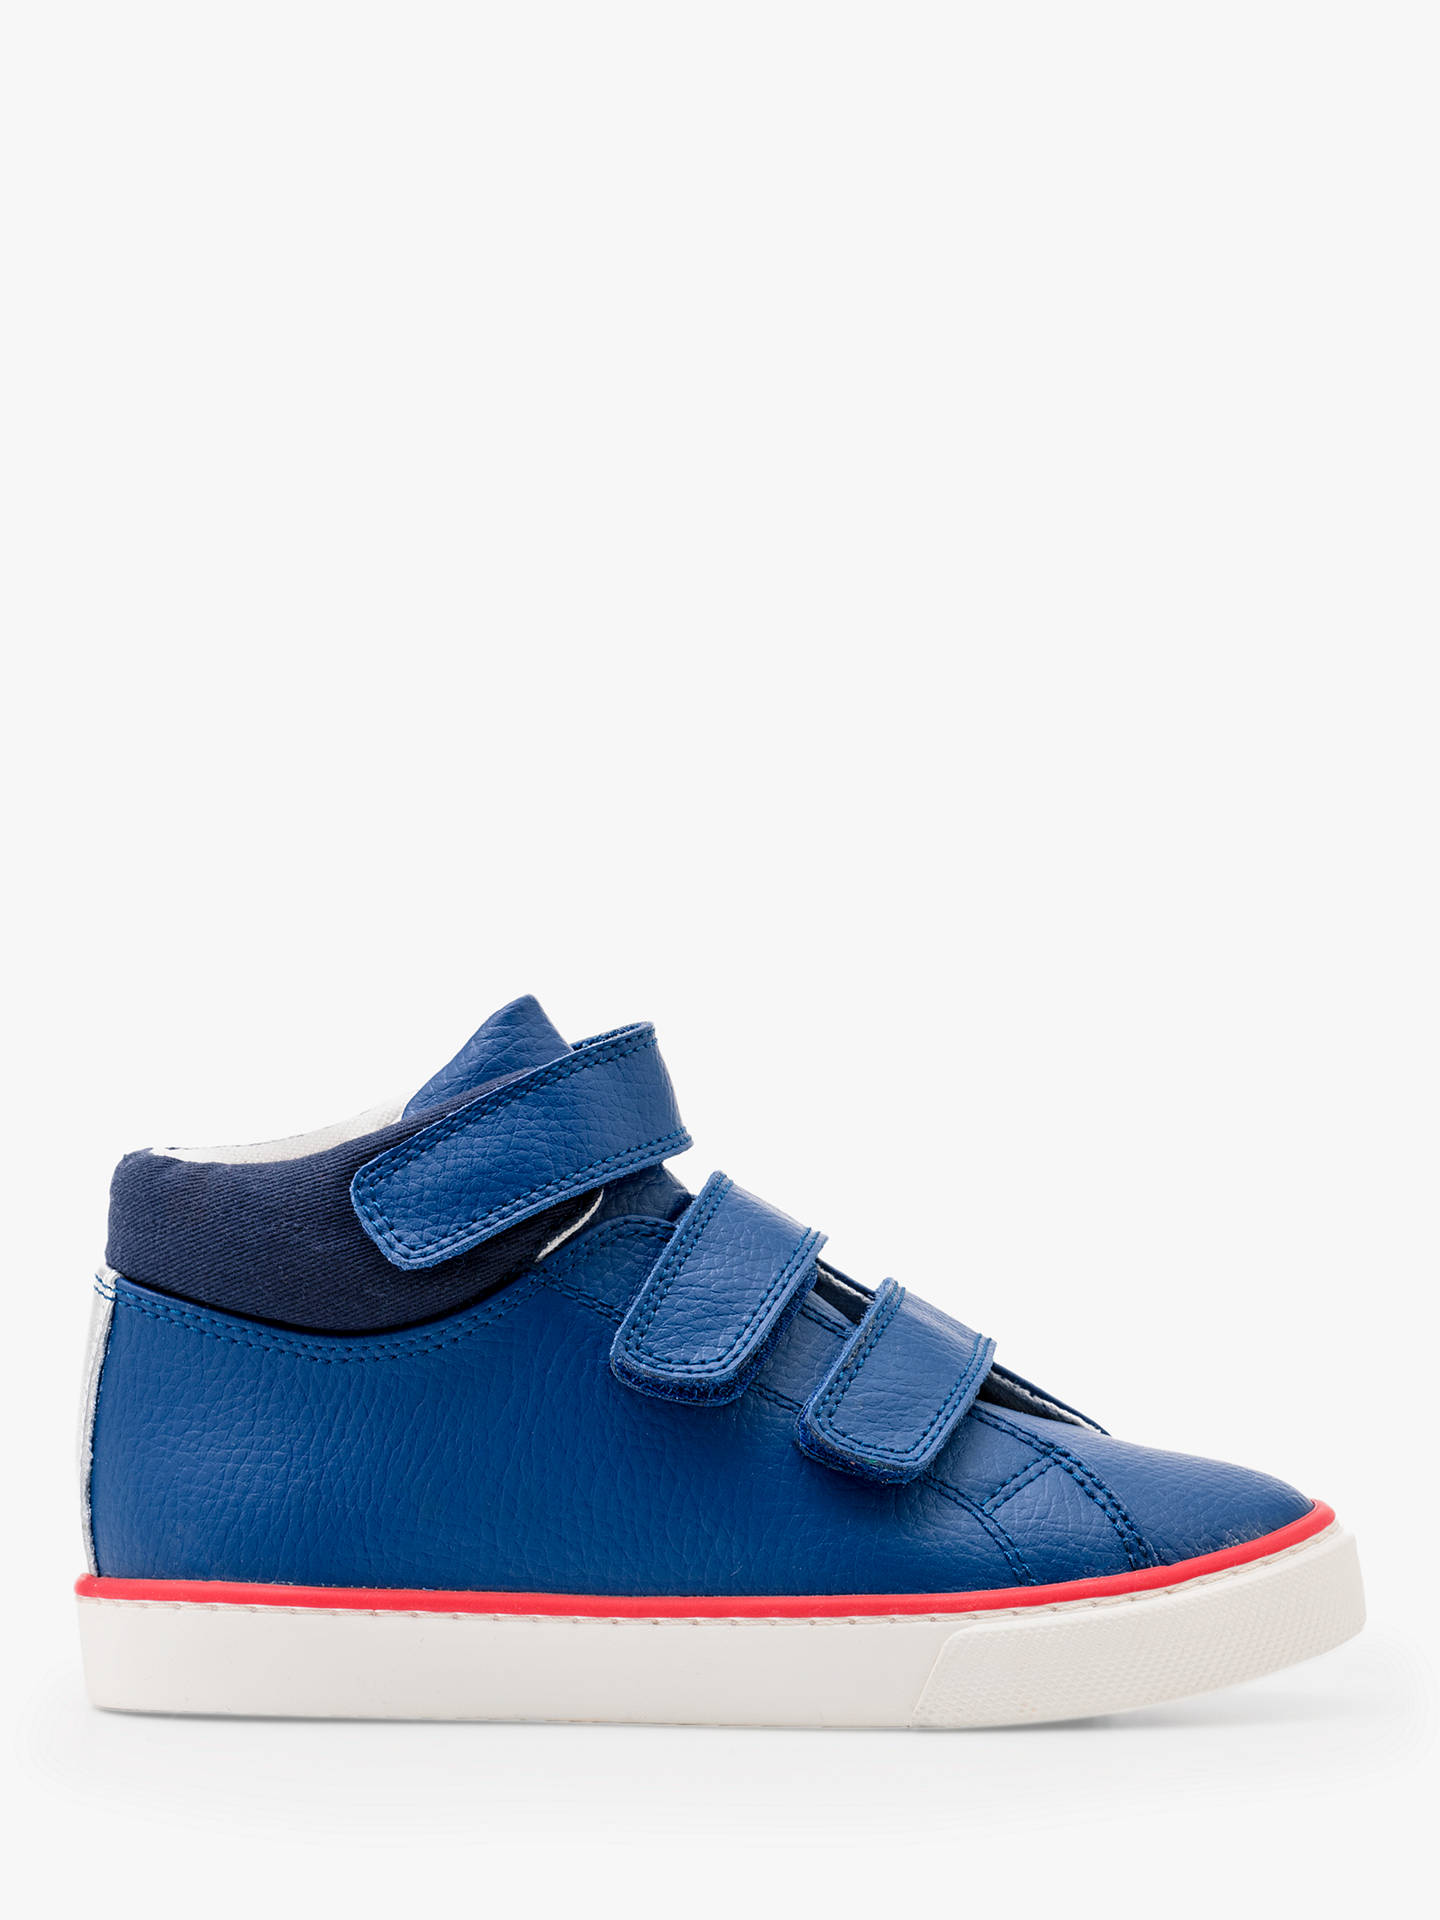 Mini Boden Children S Leather High Top Trainers Orion